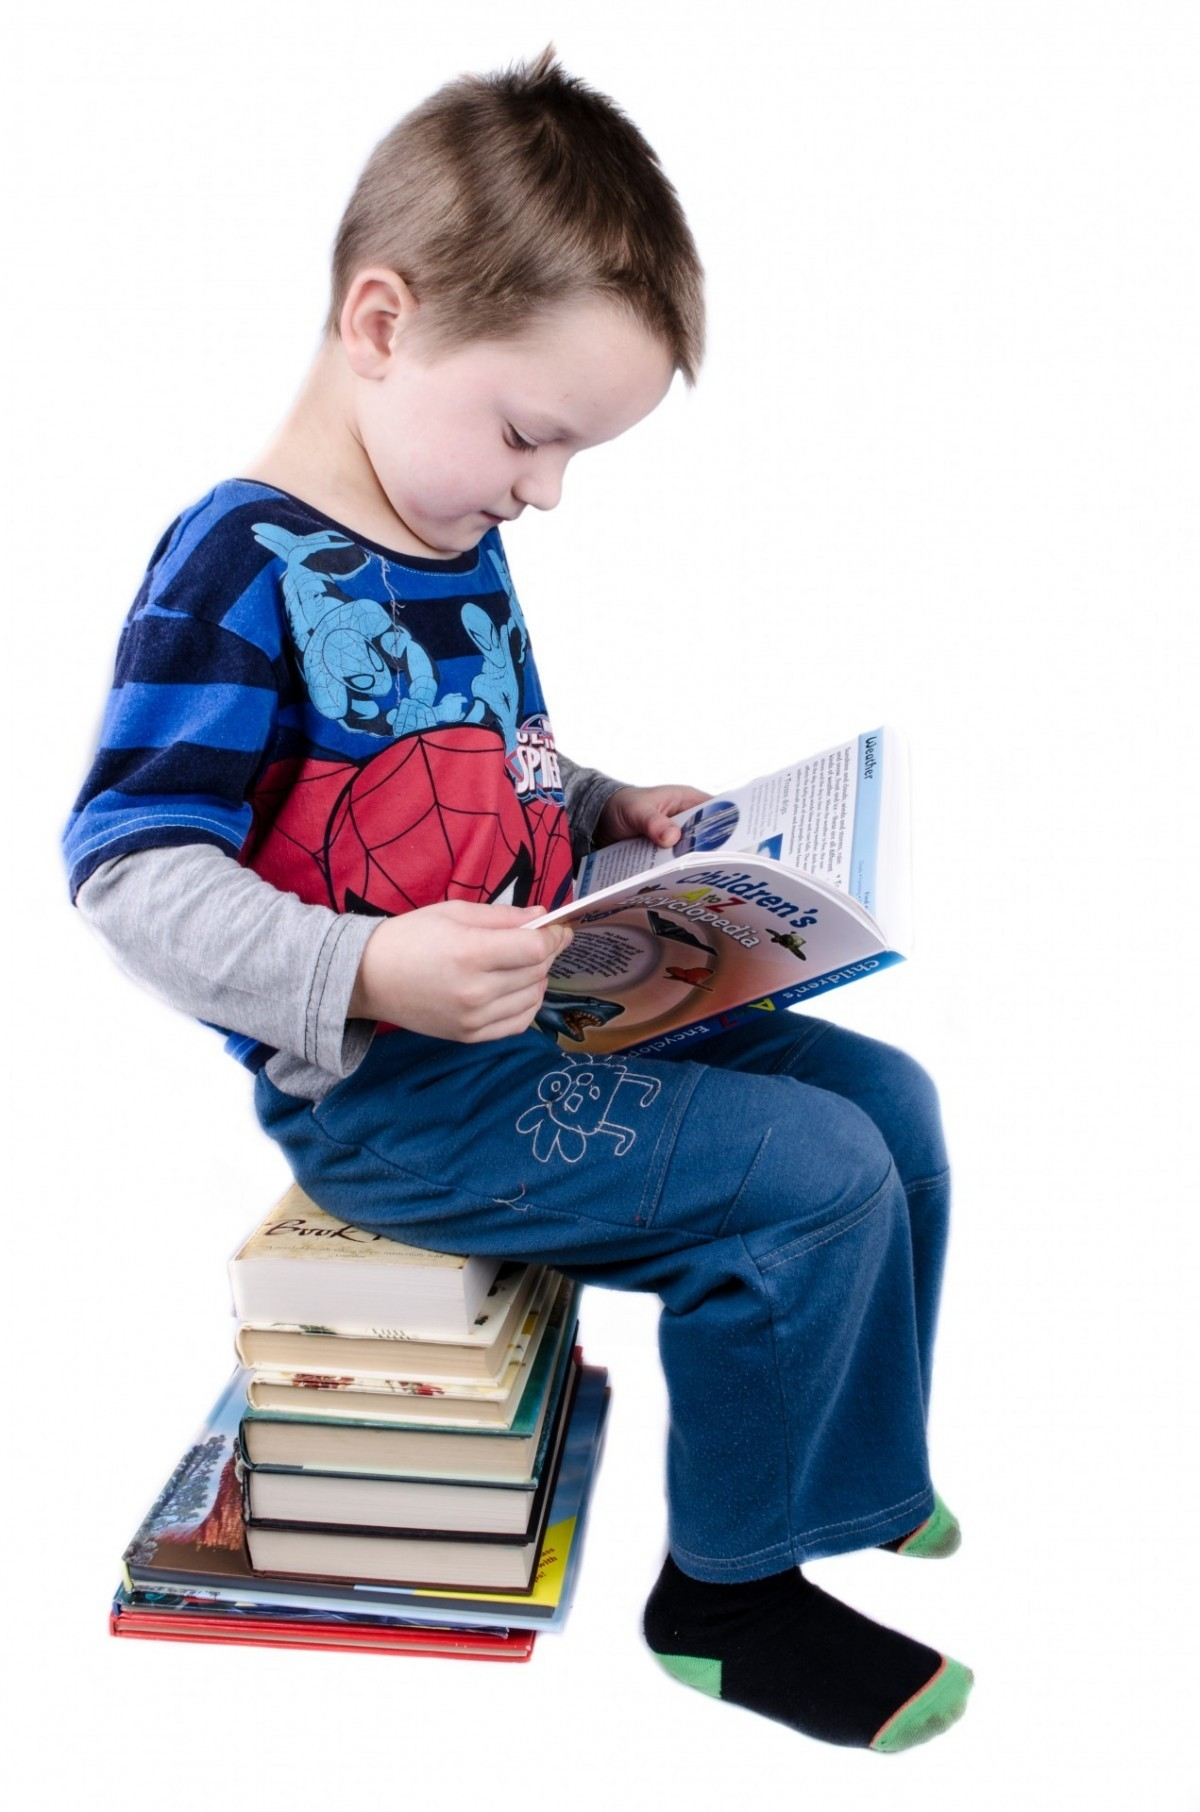 Encourage your child to pick up a book this summer